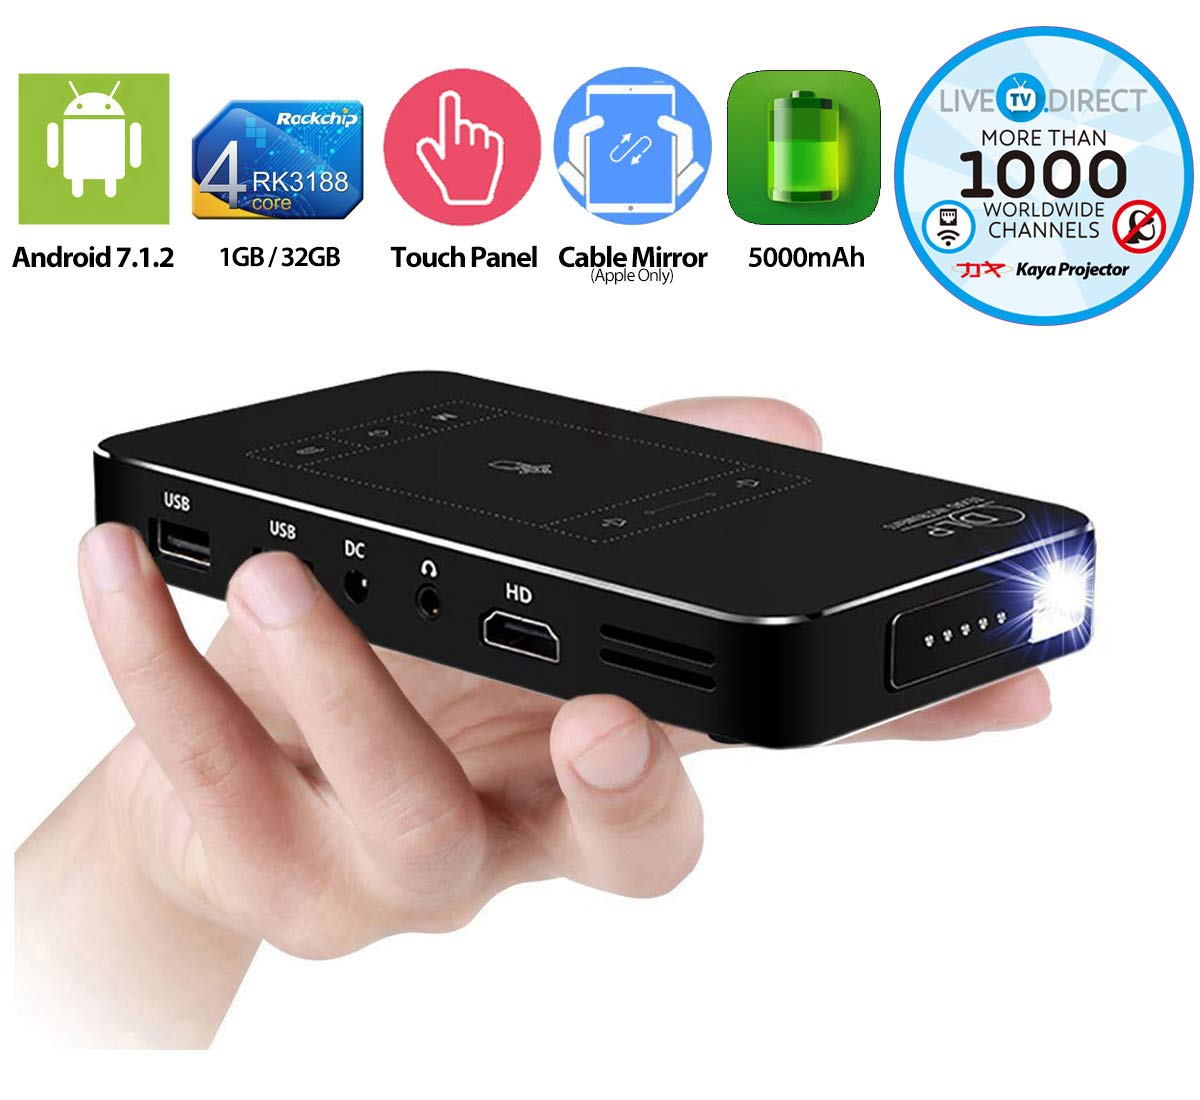 Amazon.com: Mini Projector, LiveTV.Direct M8T Portable Projector ...